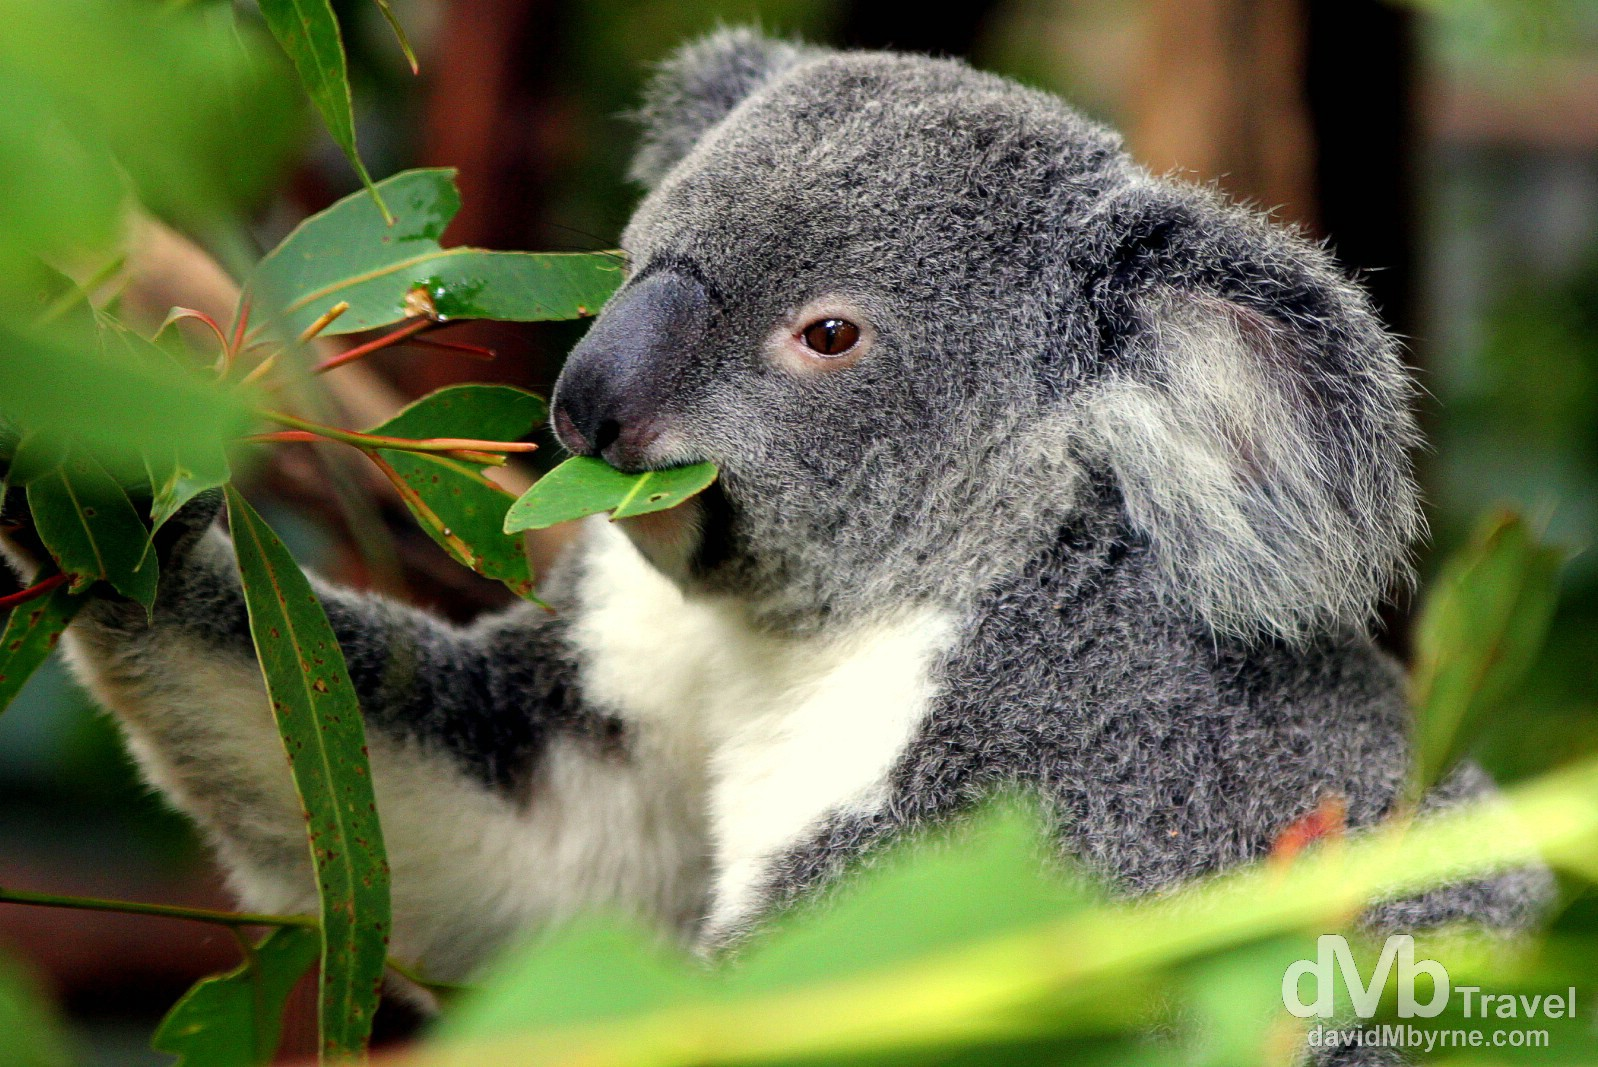 Feeding time at the Lone Pine Koala Sanctuary on the outskirts of Brisbane, Queensland, Australia. April 15th 2012.